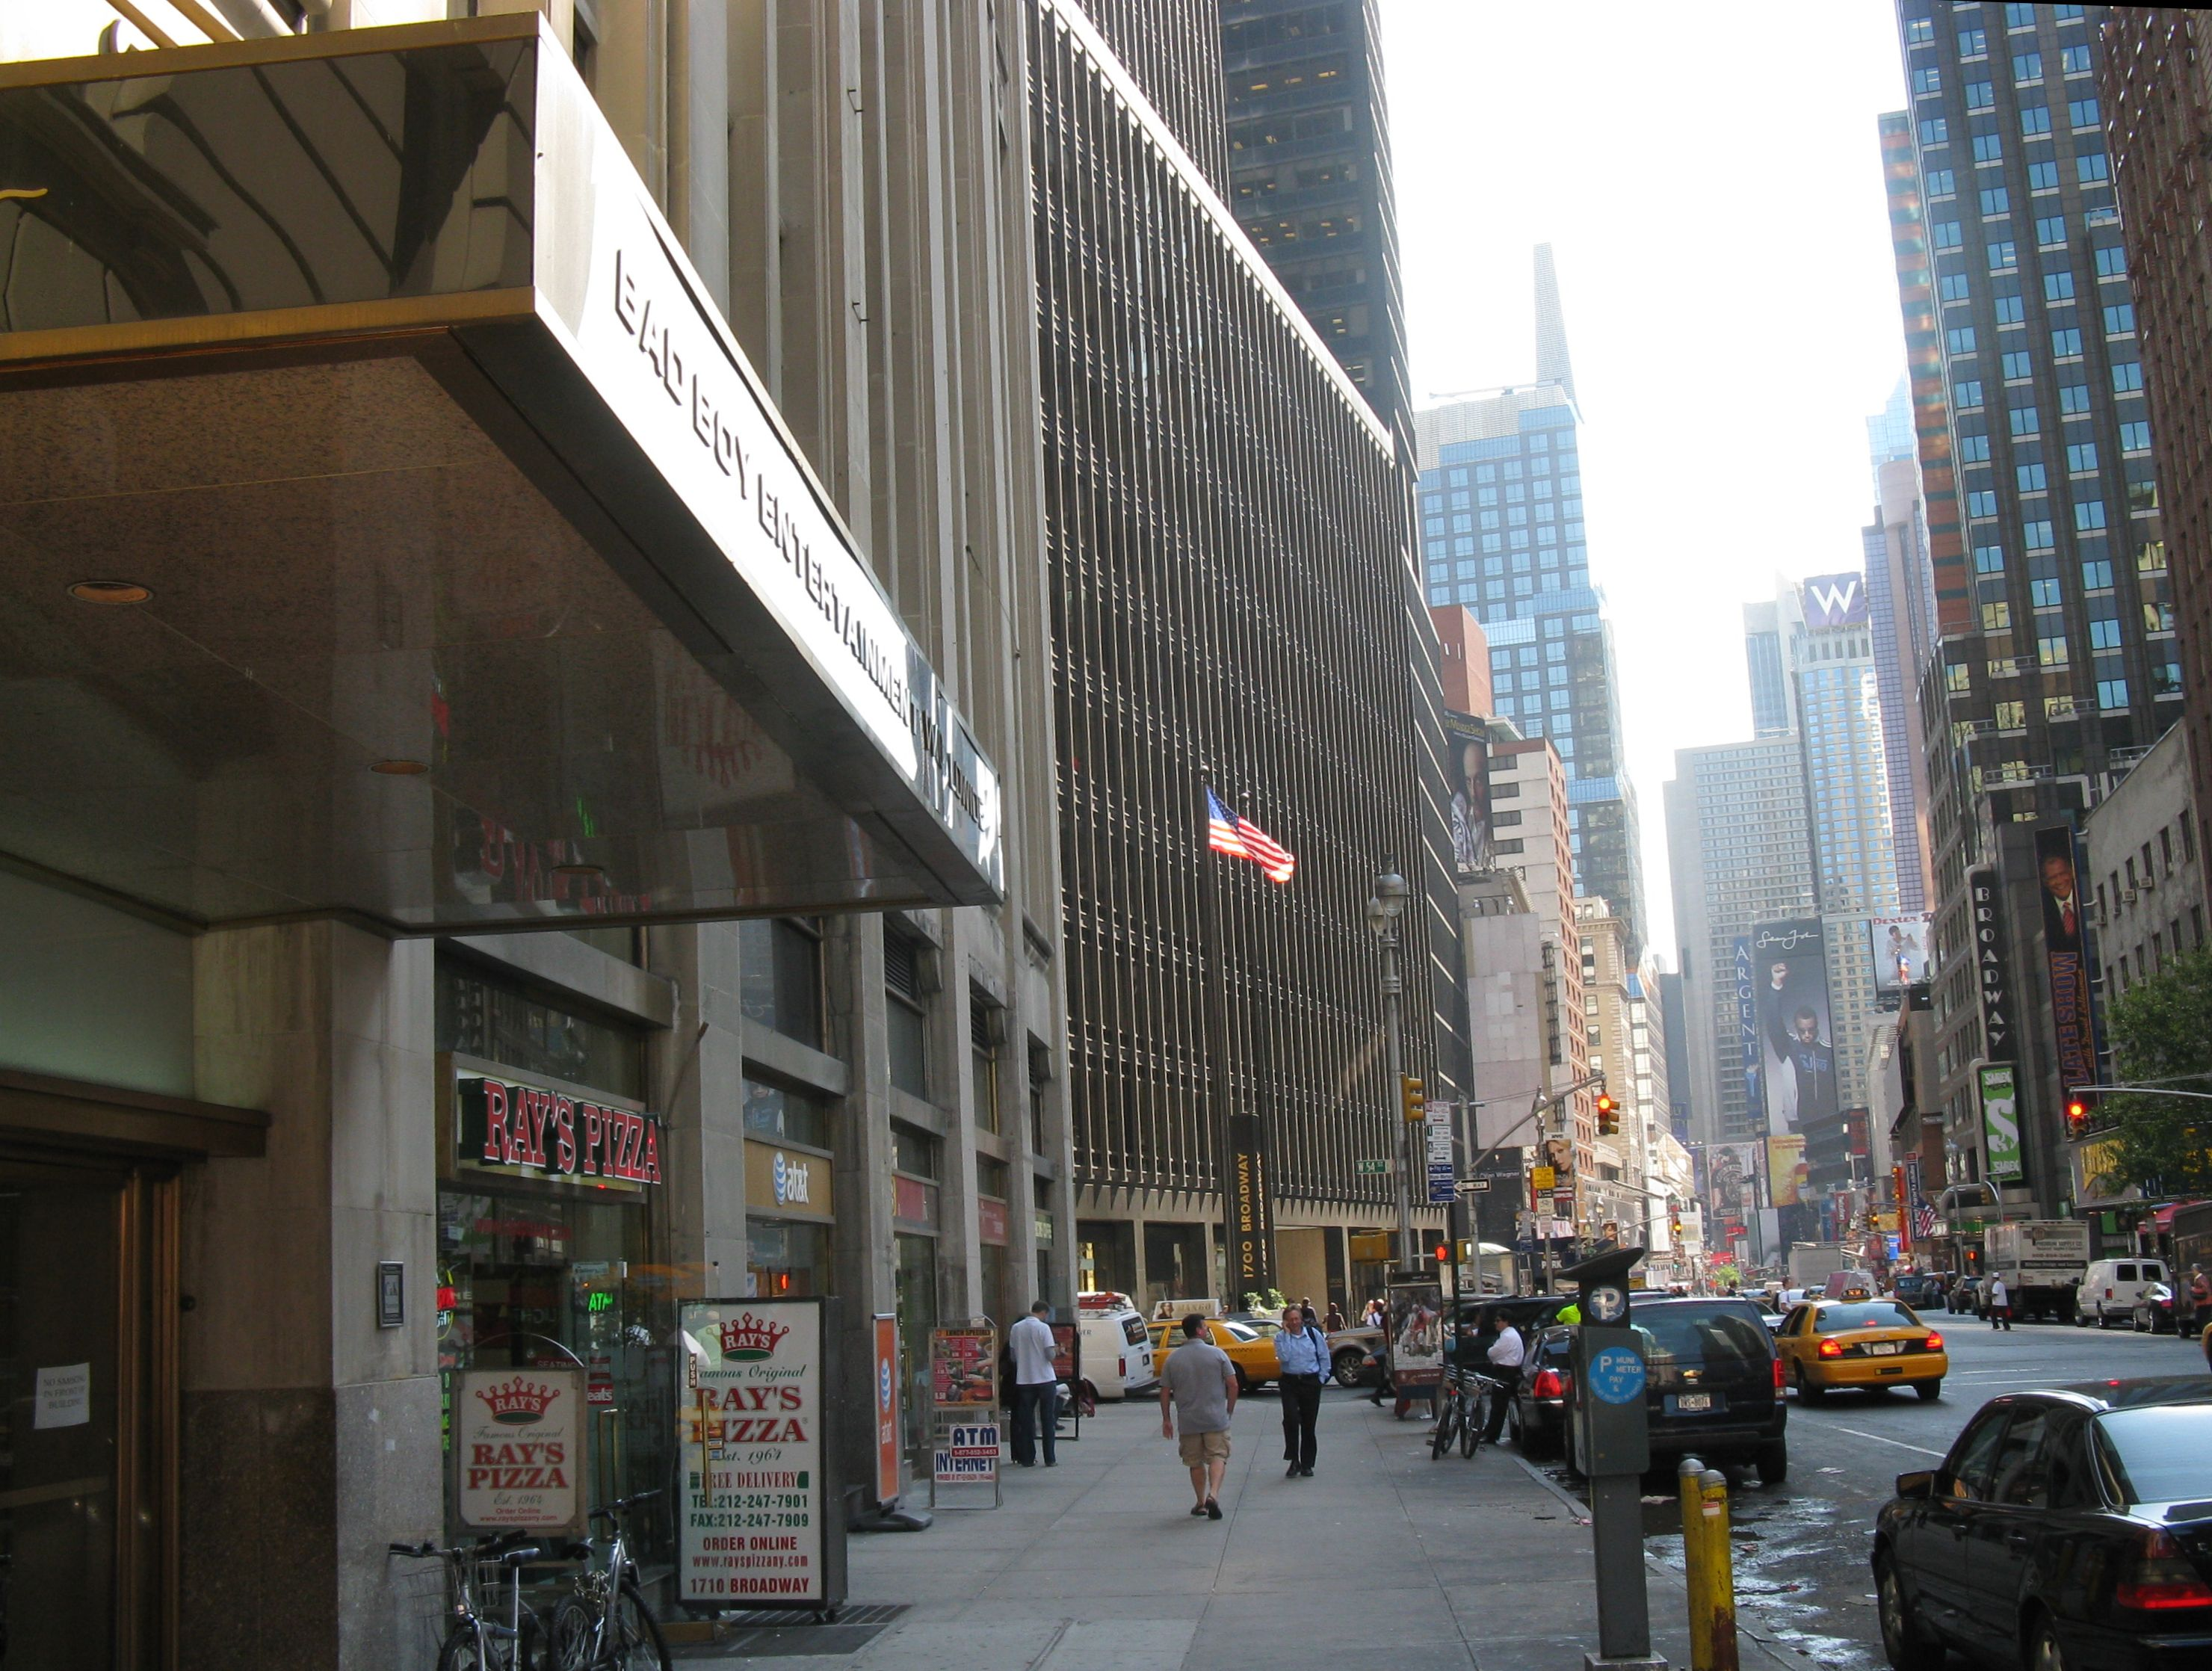 Bad Boy Entertainment Worldwide headquarters on Broadway near Times Square. A billboard of Combs is in the distance.